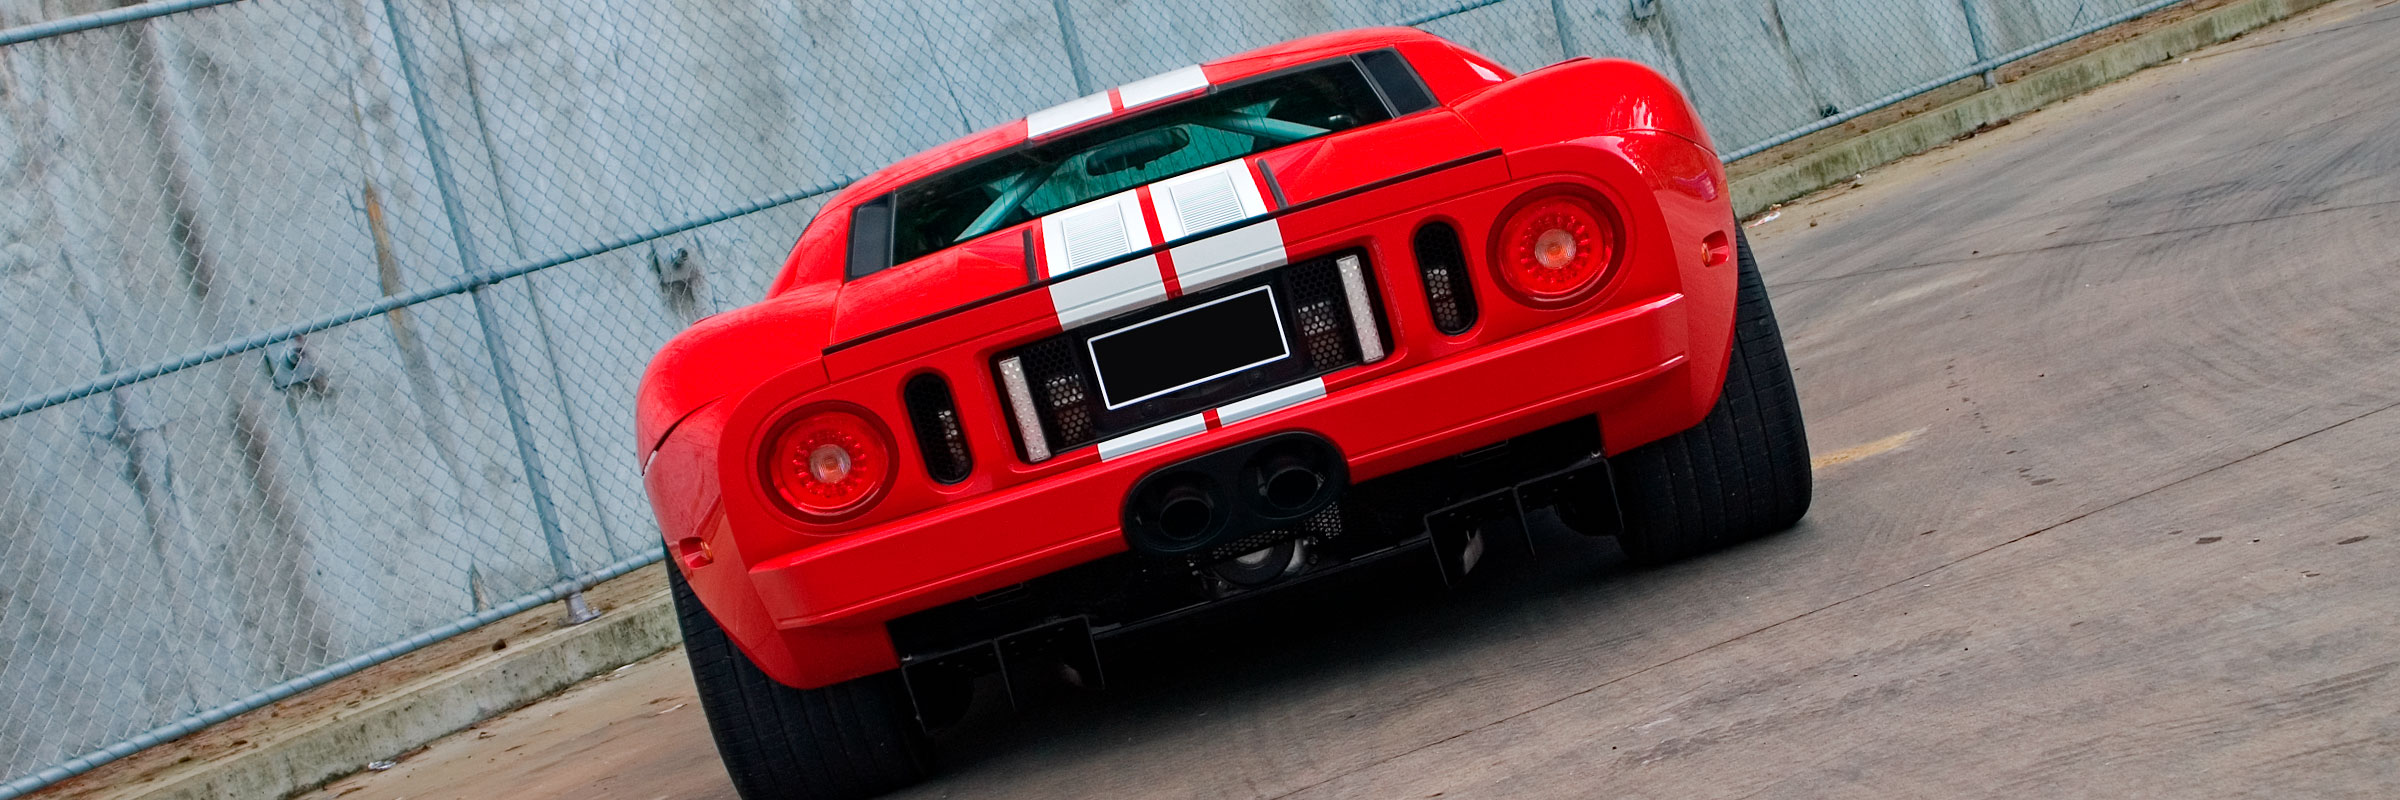 Ford GT Red Rear